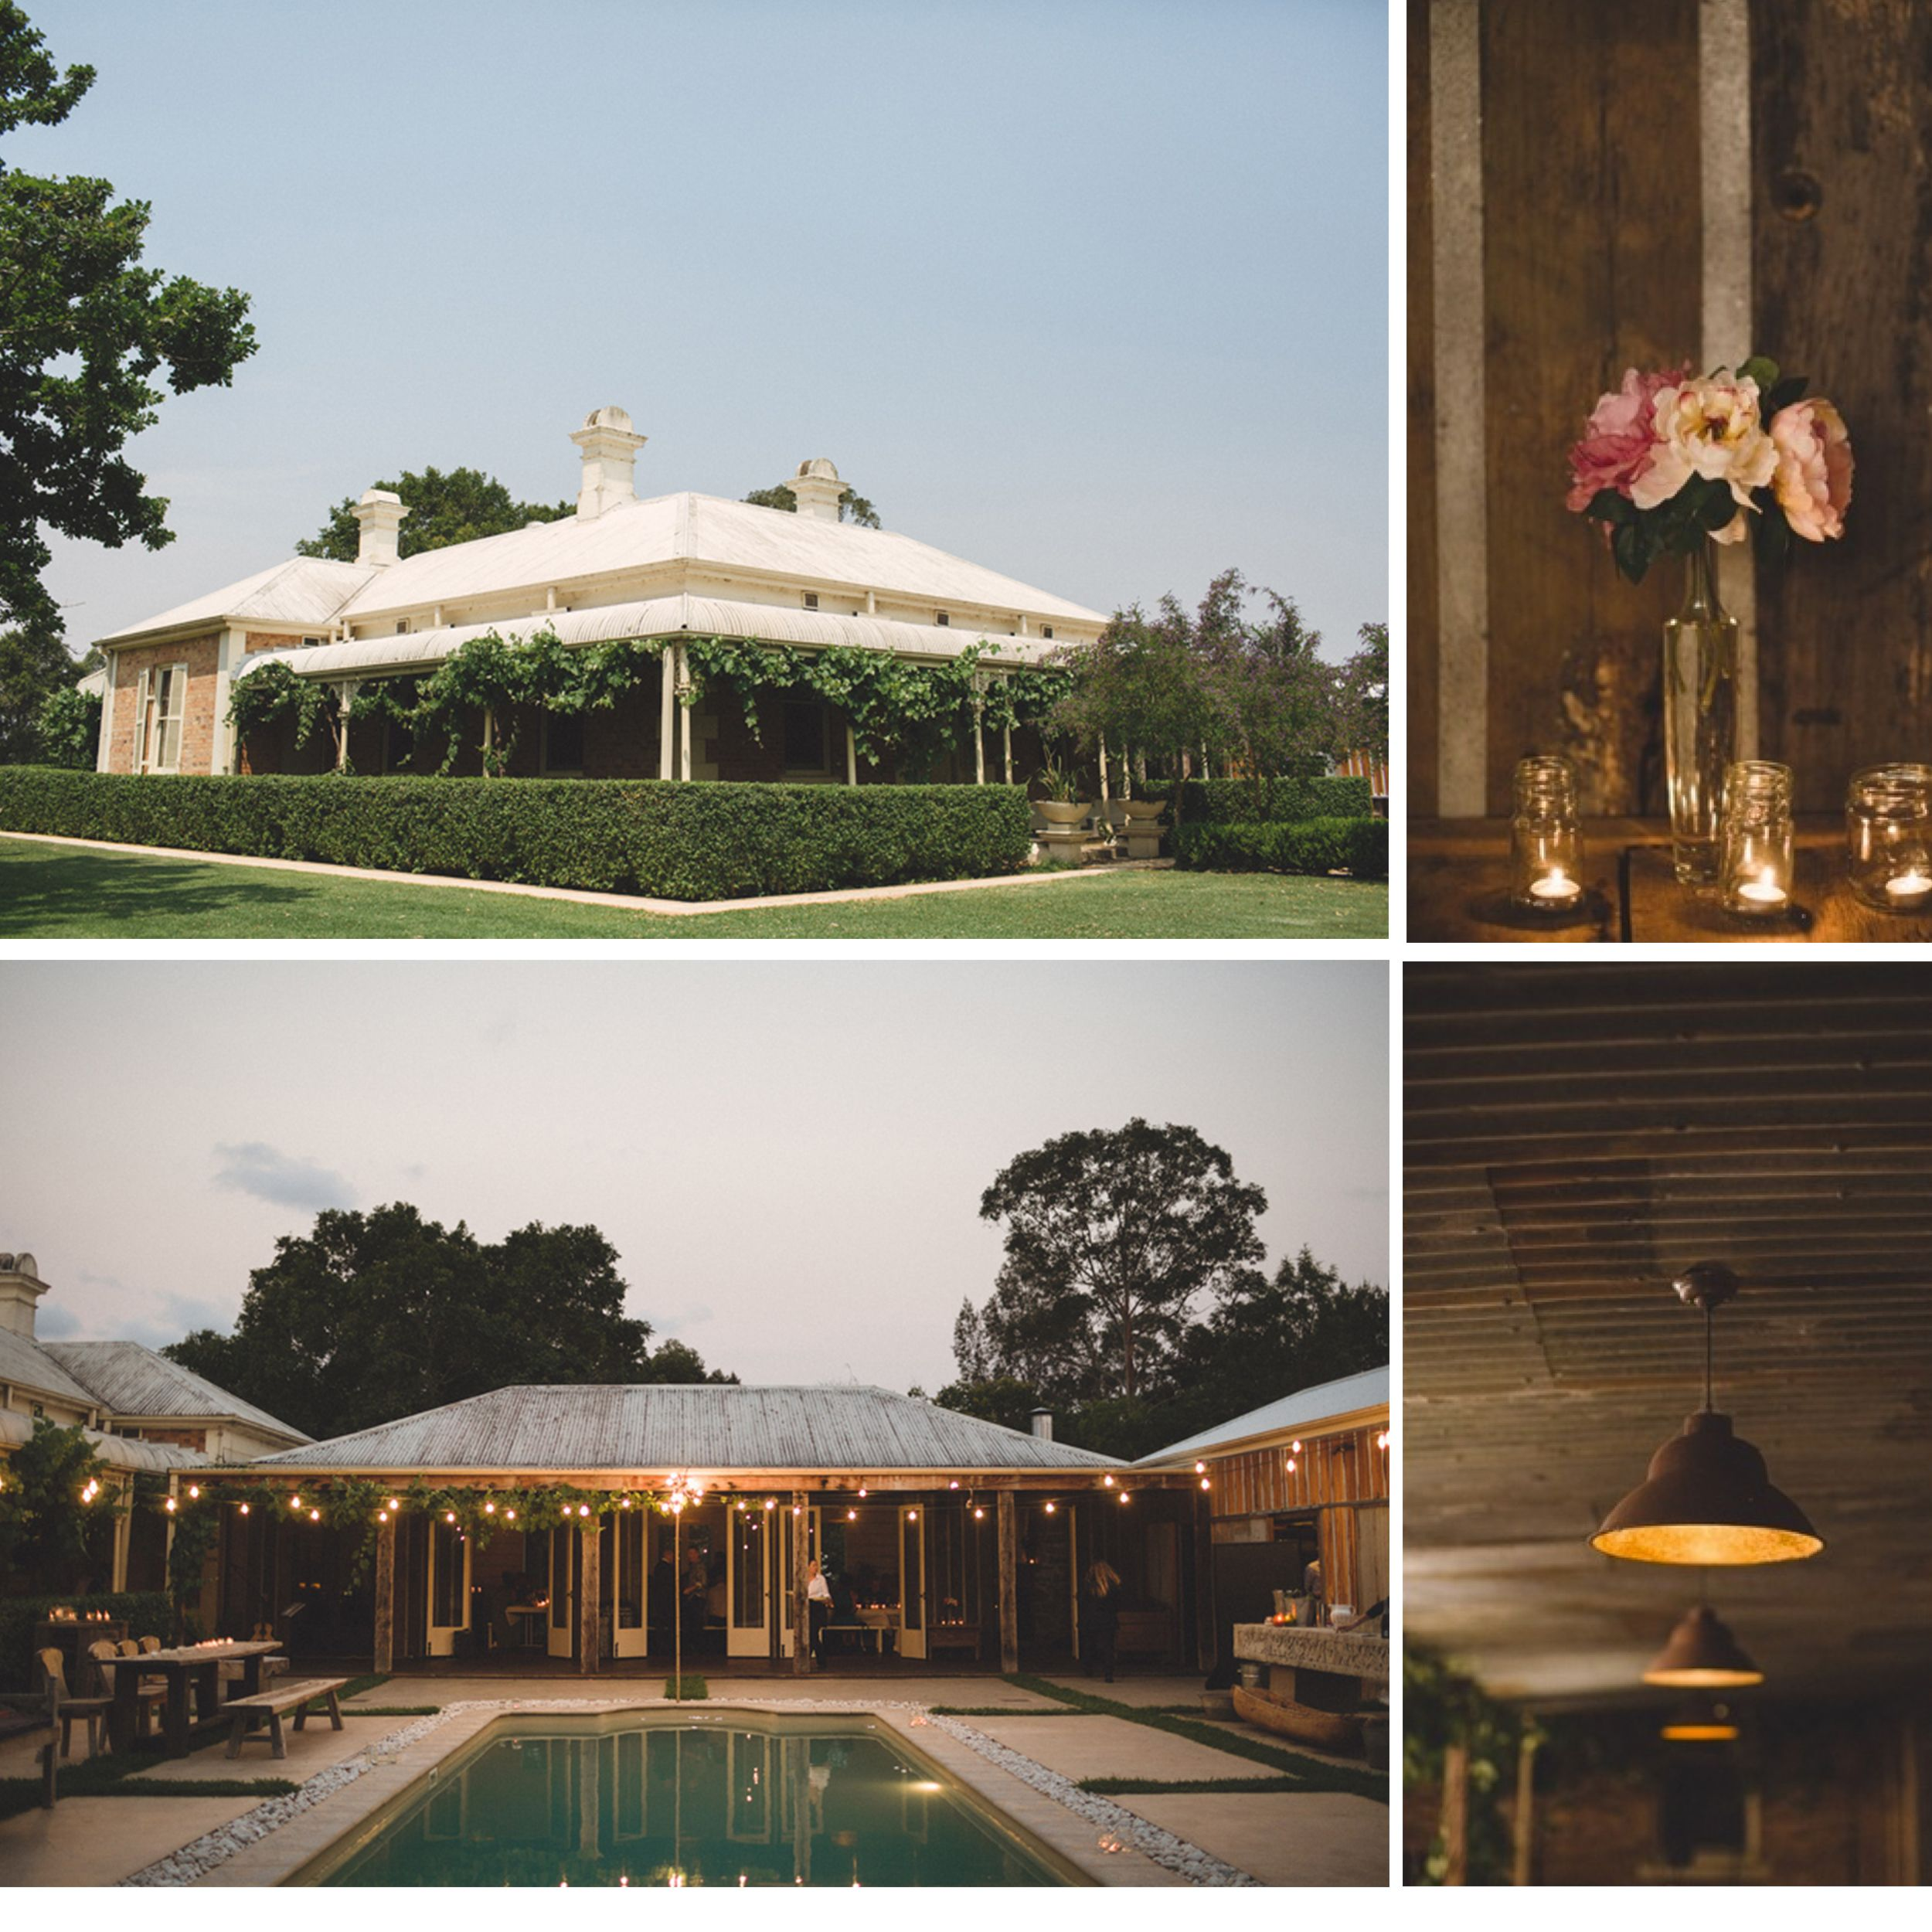 best outdoor wedding venues perth%0A Wedding Receptions Perth  Wedding Venue Western Australia  Function Centre  Perth  WA  Functions  Corporate Events  Function Rooms Perth  Burswood  u